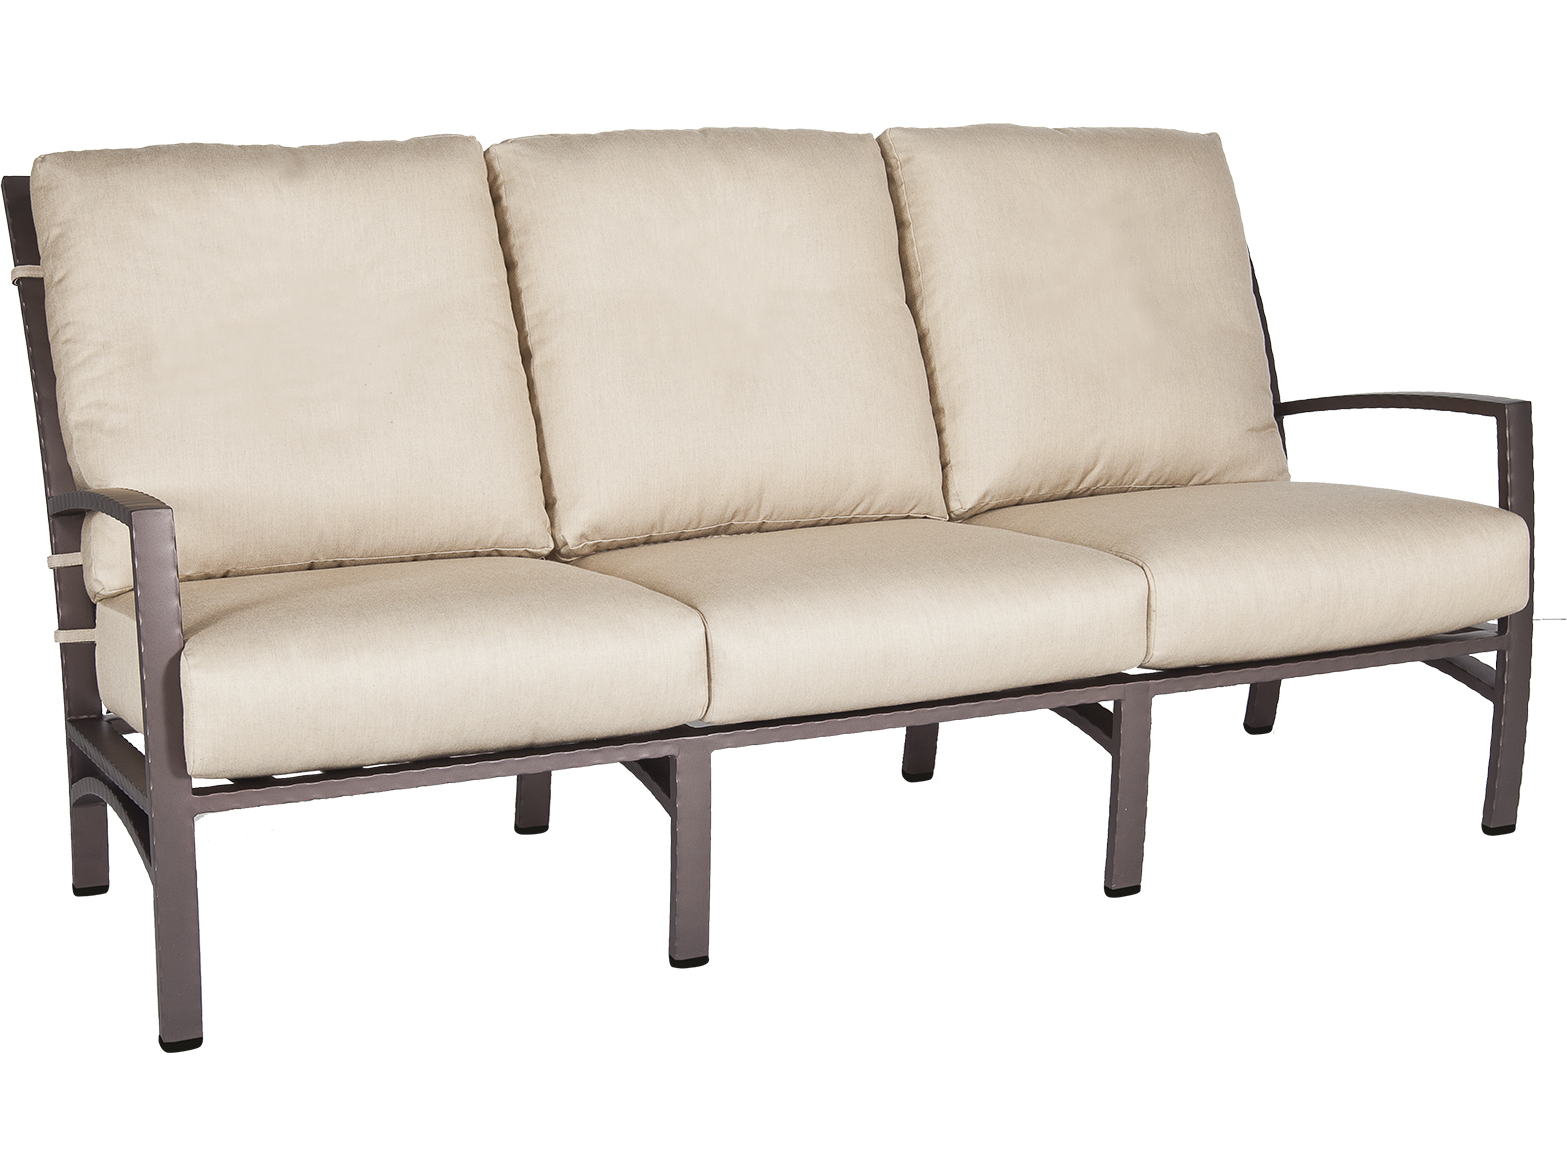 ow lee sol wrought iron sofa 48115 3s. Black Bedroom Furniture Sets. Home Design Ideas